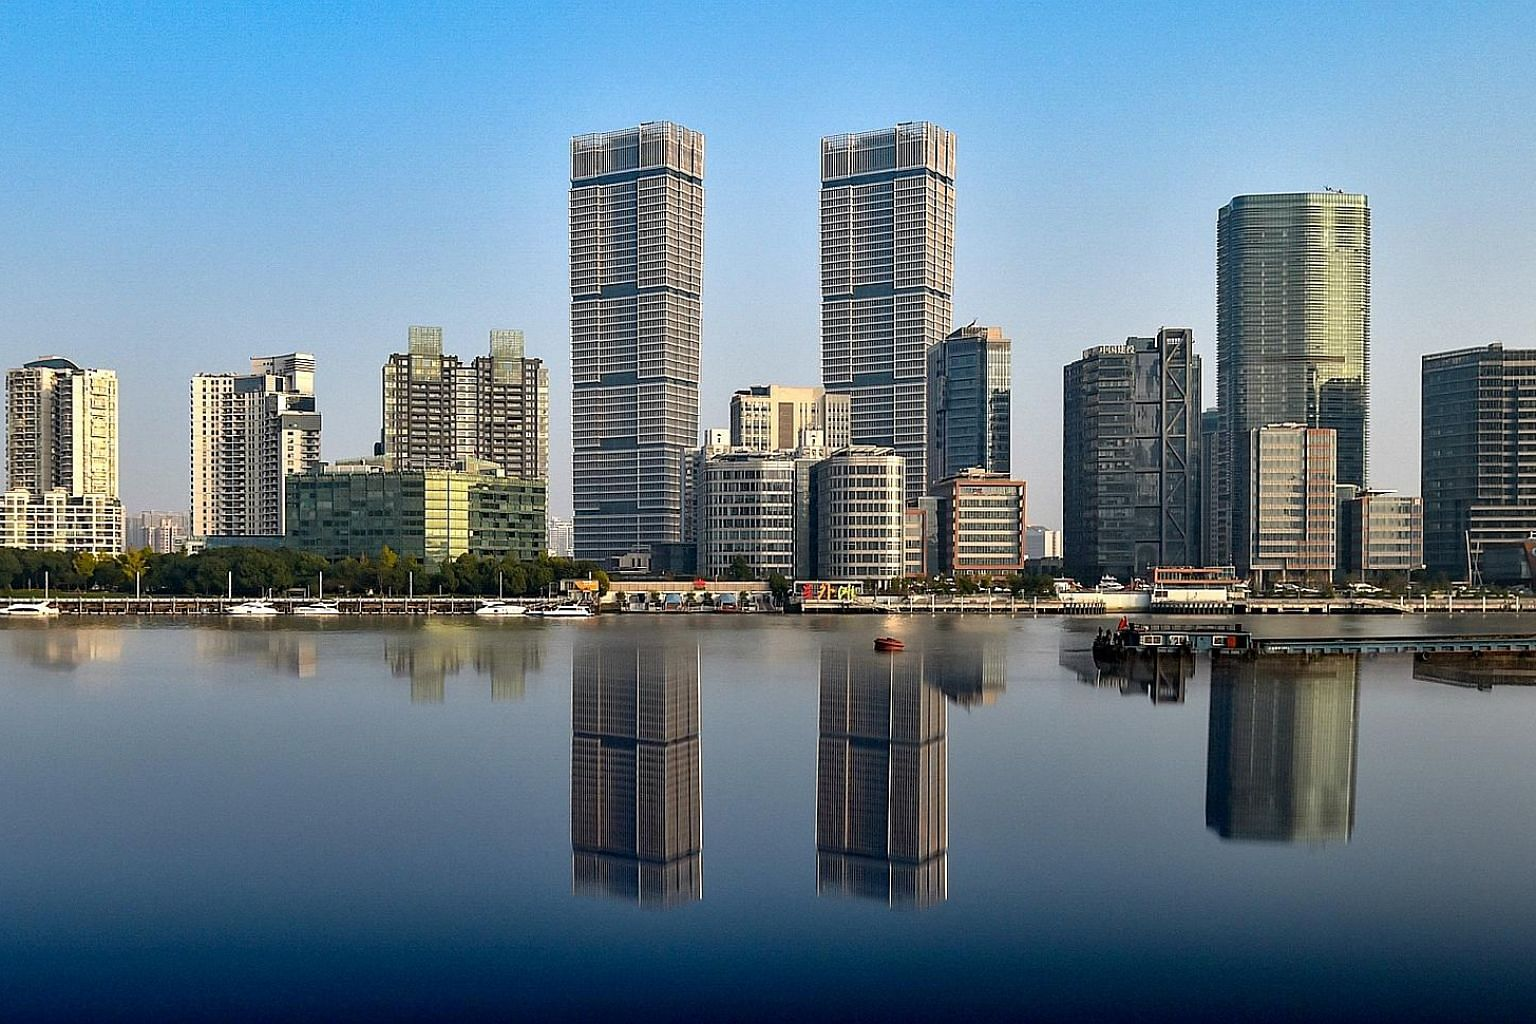 CapitaLand, through Raffles City China Investment Partners III, formed a 50:50 joint venture with GIC to acquire the twin towers, which sit on 4.05ha along Huangpu River in North Bund, and soar 263m above the fast-growing business district. The purch